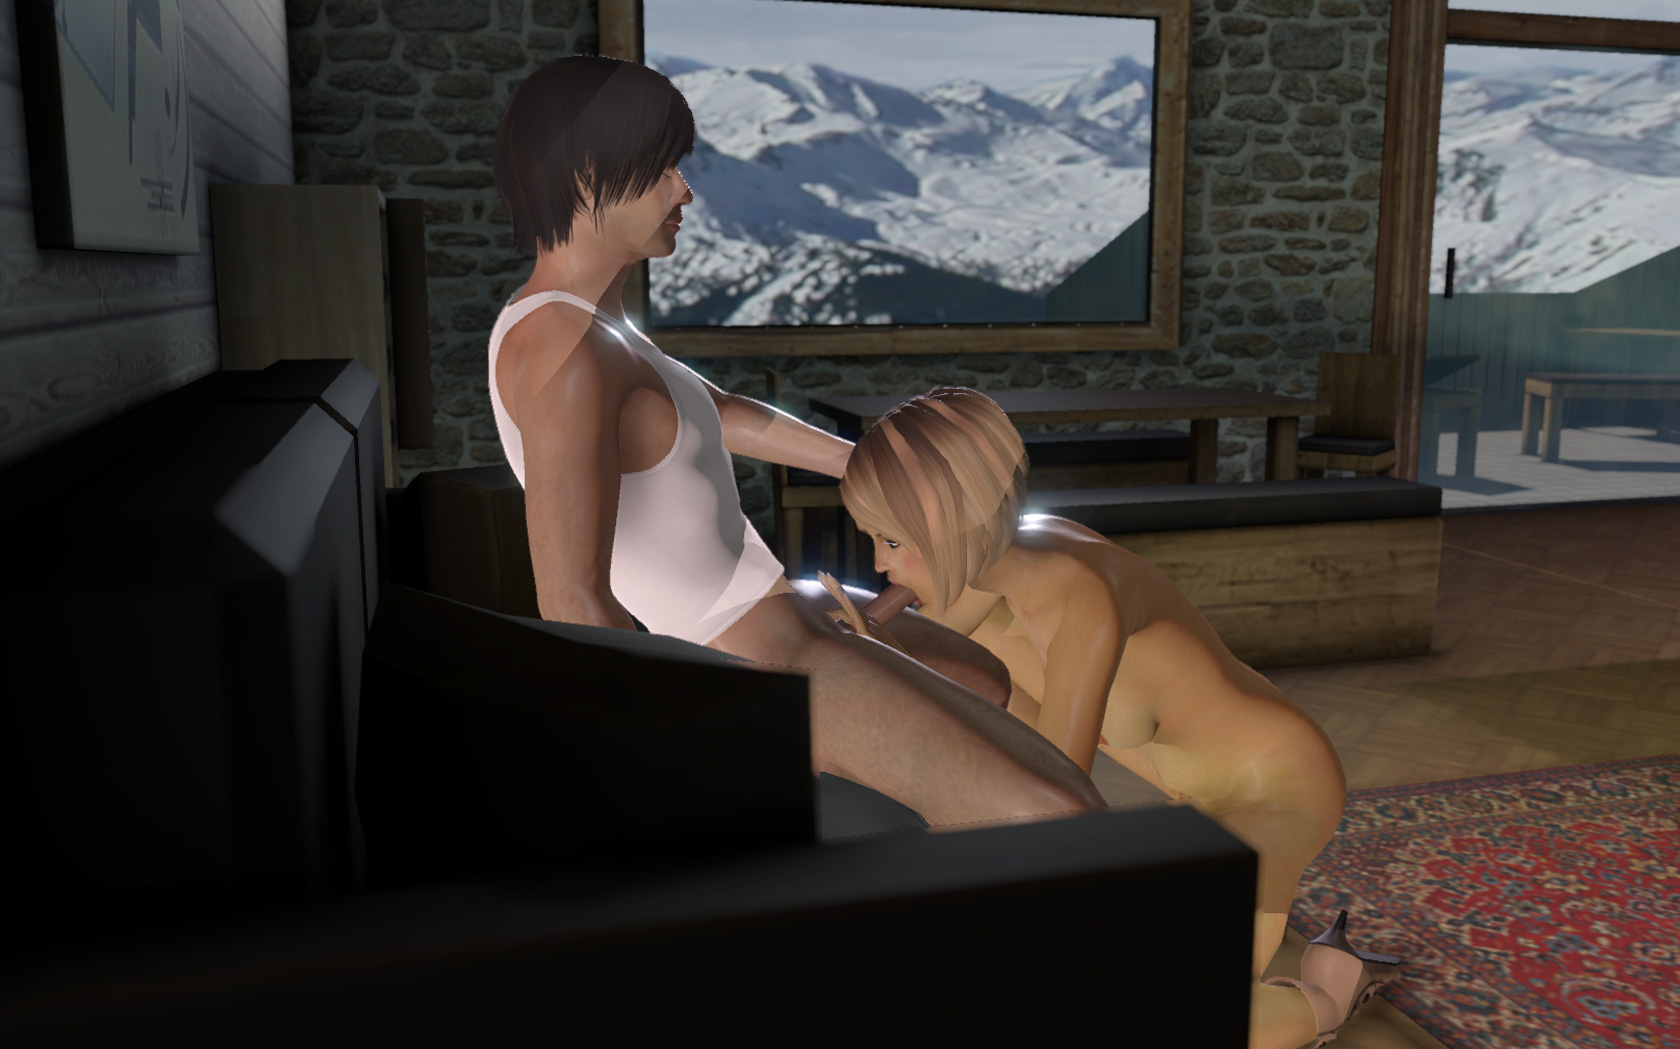 Animated Sex Games Online 3d sex games - interactive virtual sex simulations - 3d sexvilla